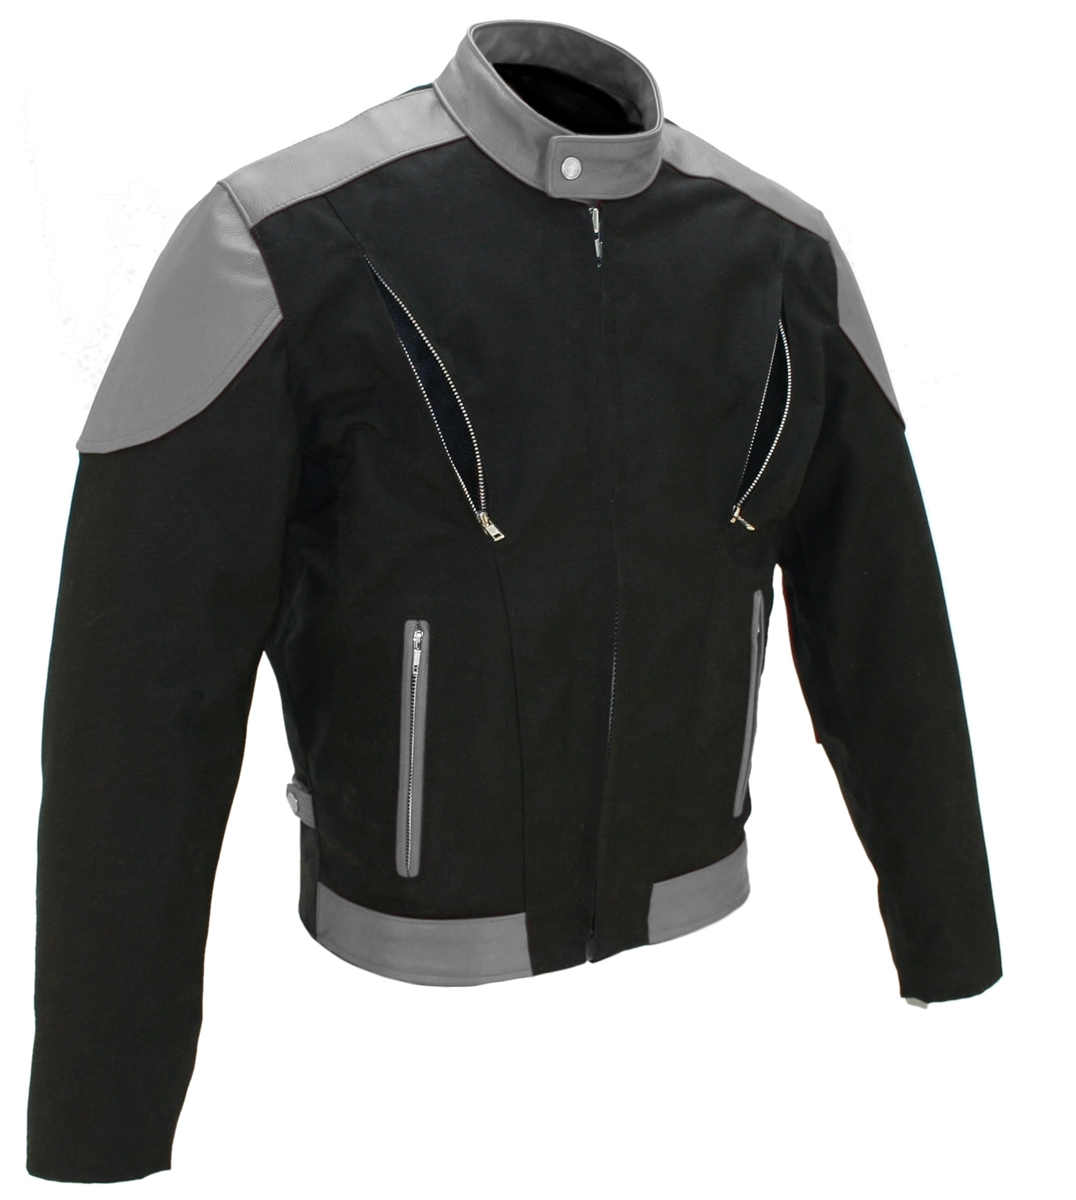 The Vented Leather & Cordura Jacket. This jacket is made of 1.2-1.4 soft premium cowhide and Denier Cordura 1000 (Heavy Duty Textile). Front and Rear Vents with heavy mesh liner for full ventilation - Too big or too small - adjustable  Sides, Too Hot - re